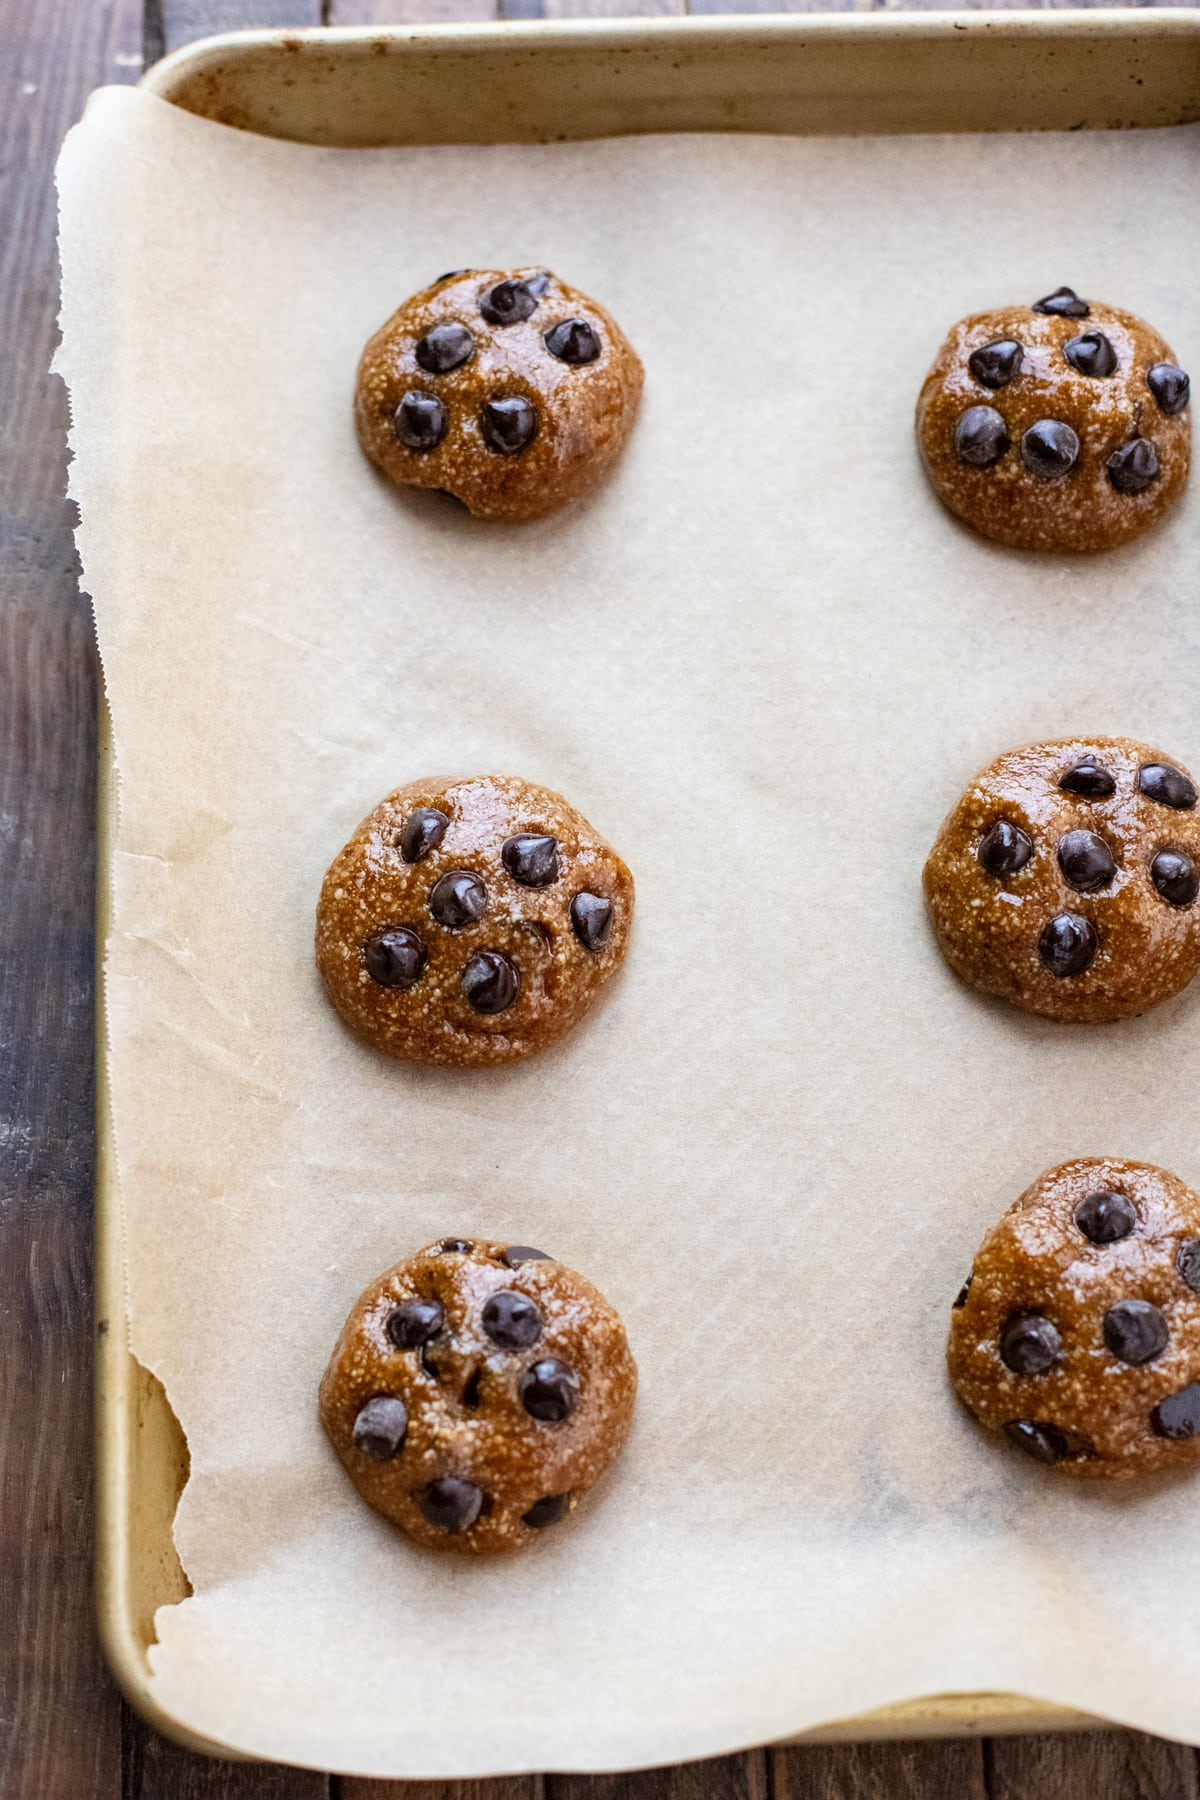 chocolate chip cookie dough balls arranged on cookie sheet lined with parchment paper.